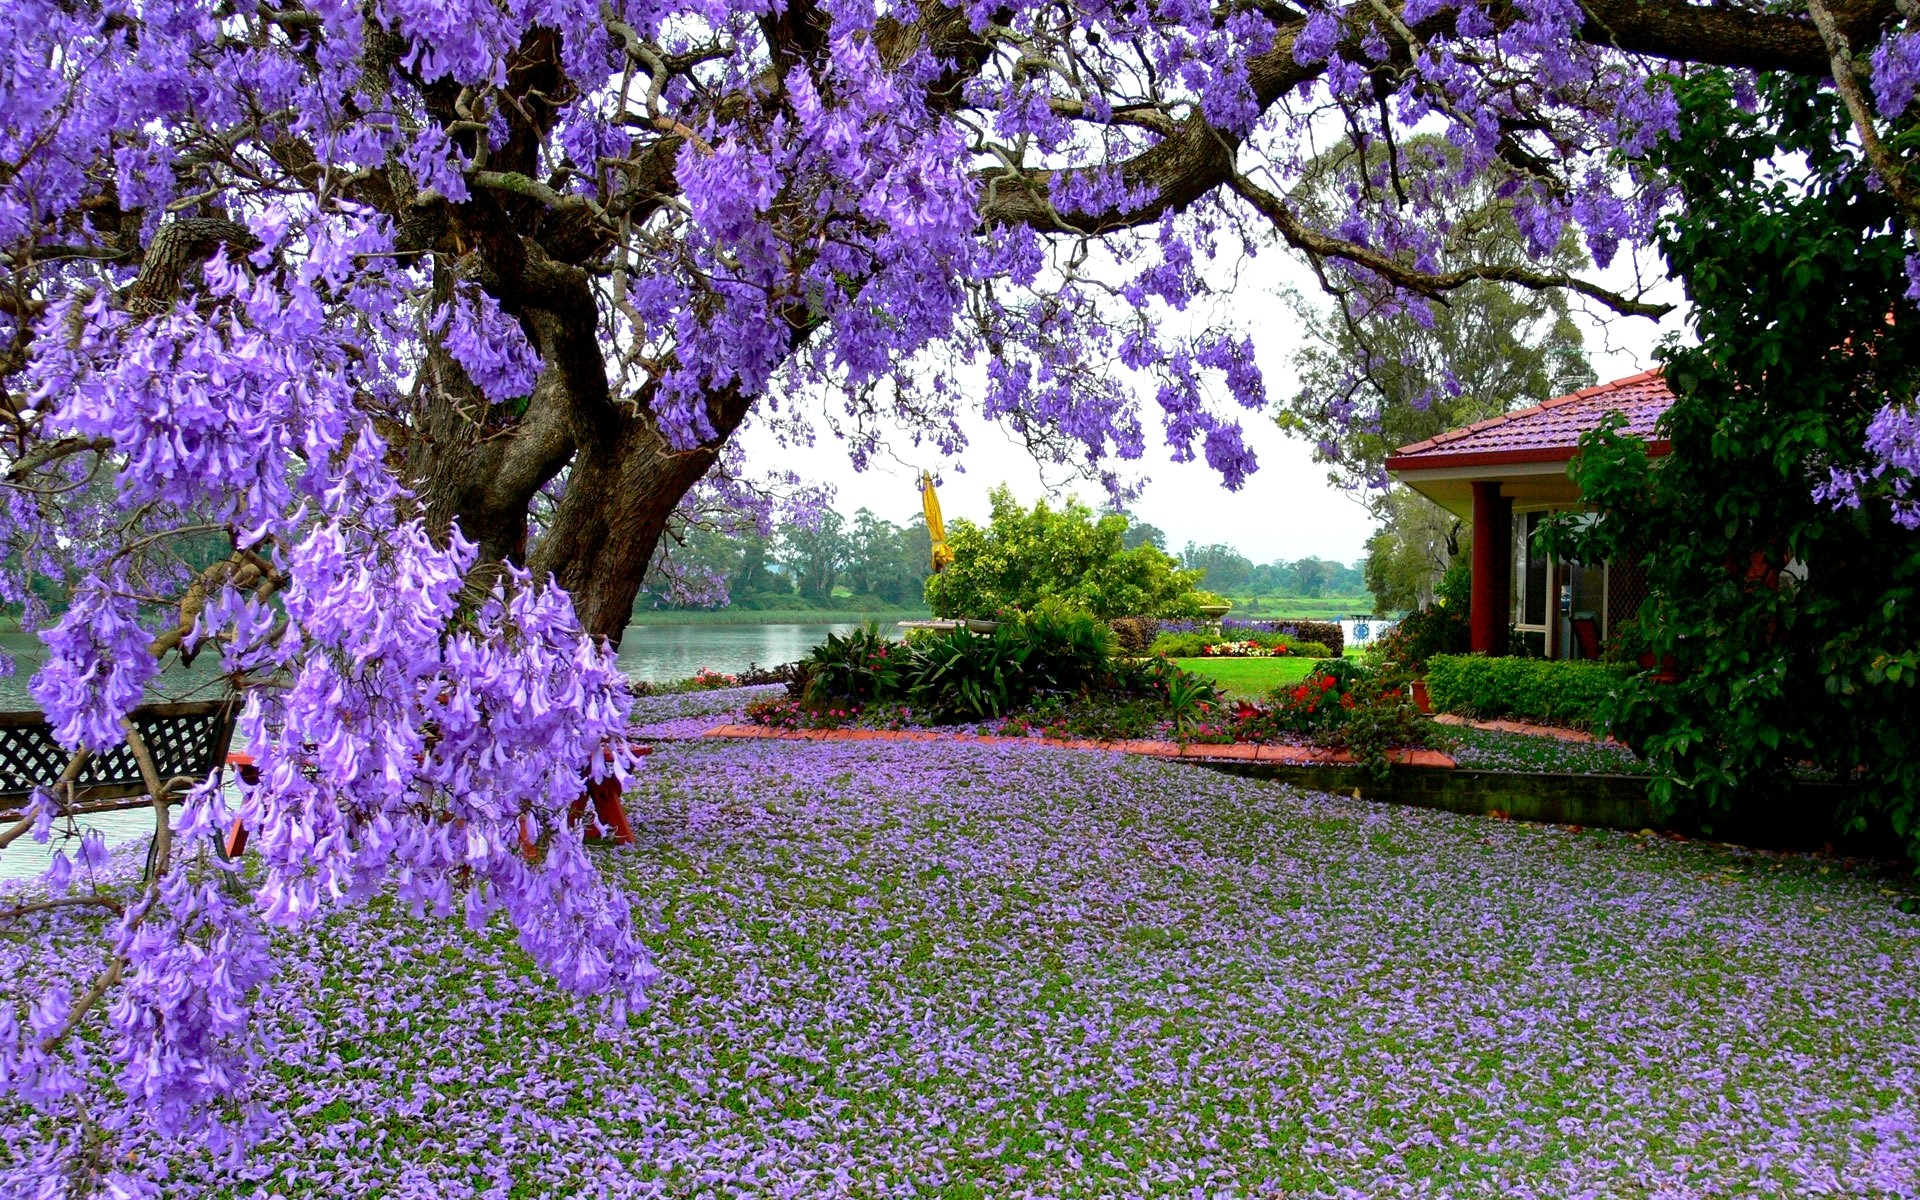 Spring Wallpaper and Screensavers HD 70 images 1920x1200